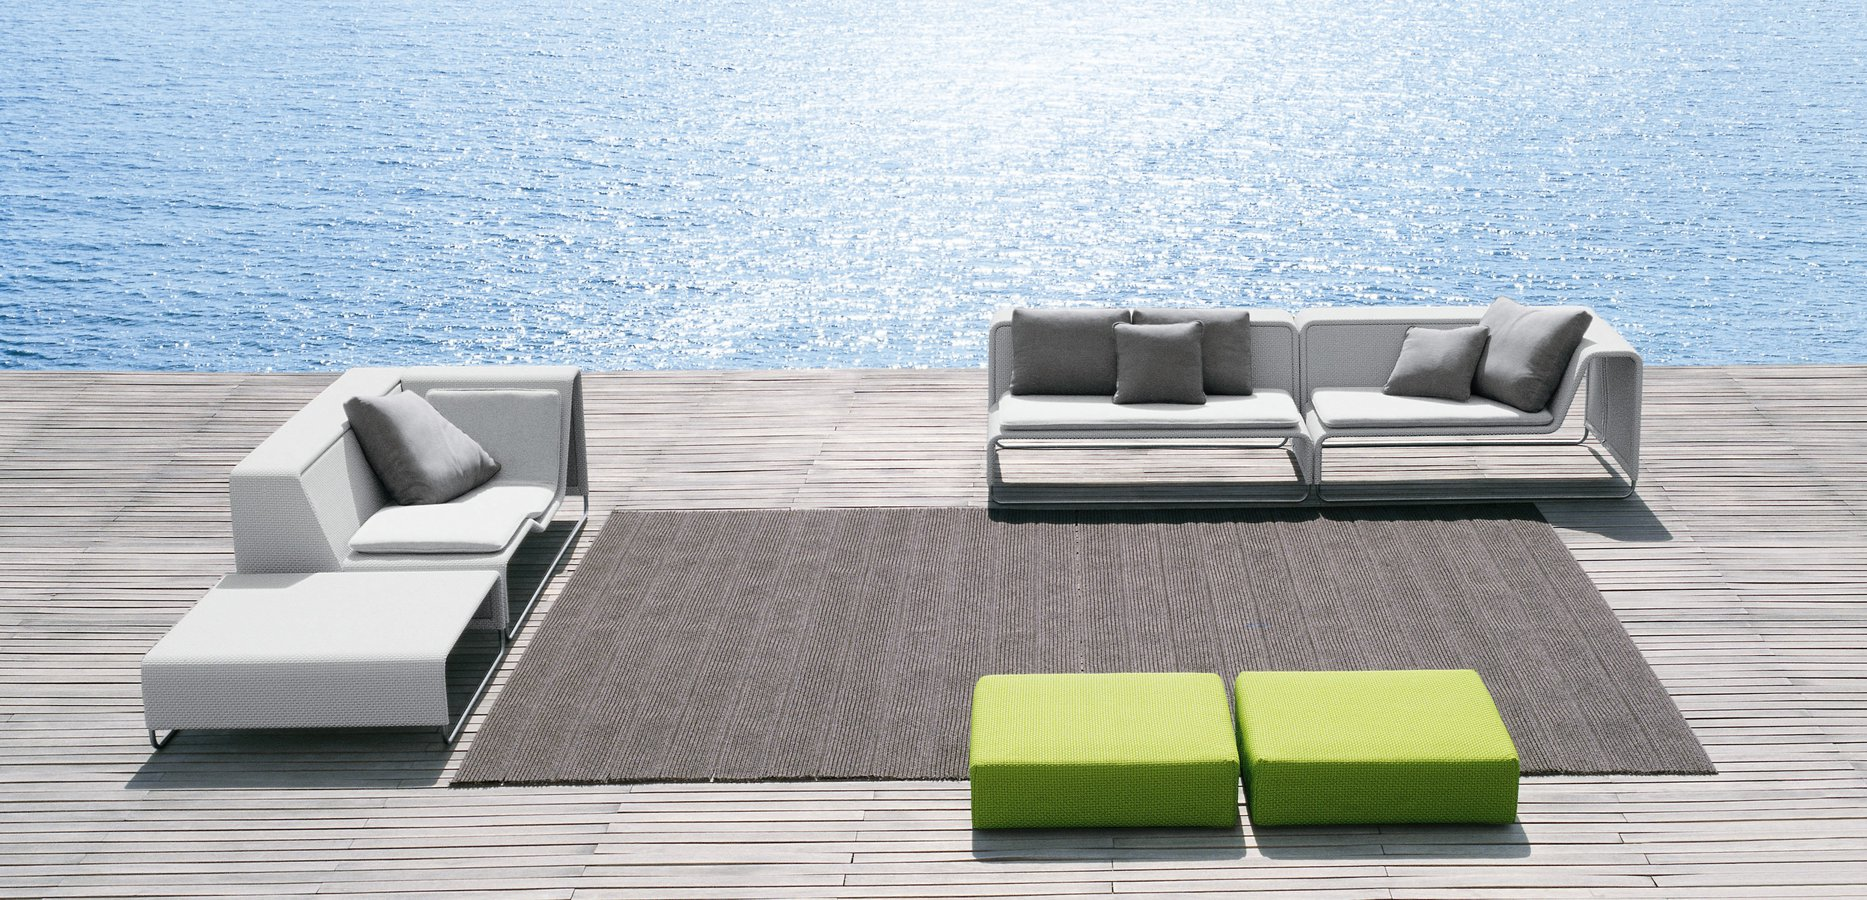 Attraktiv Modular Seating For The Outdoors, Comprised Of Corner, Central,  Chaise Longue And